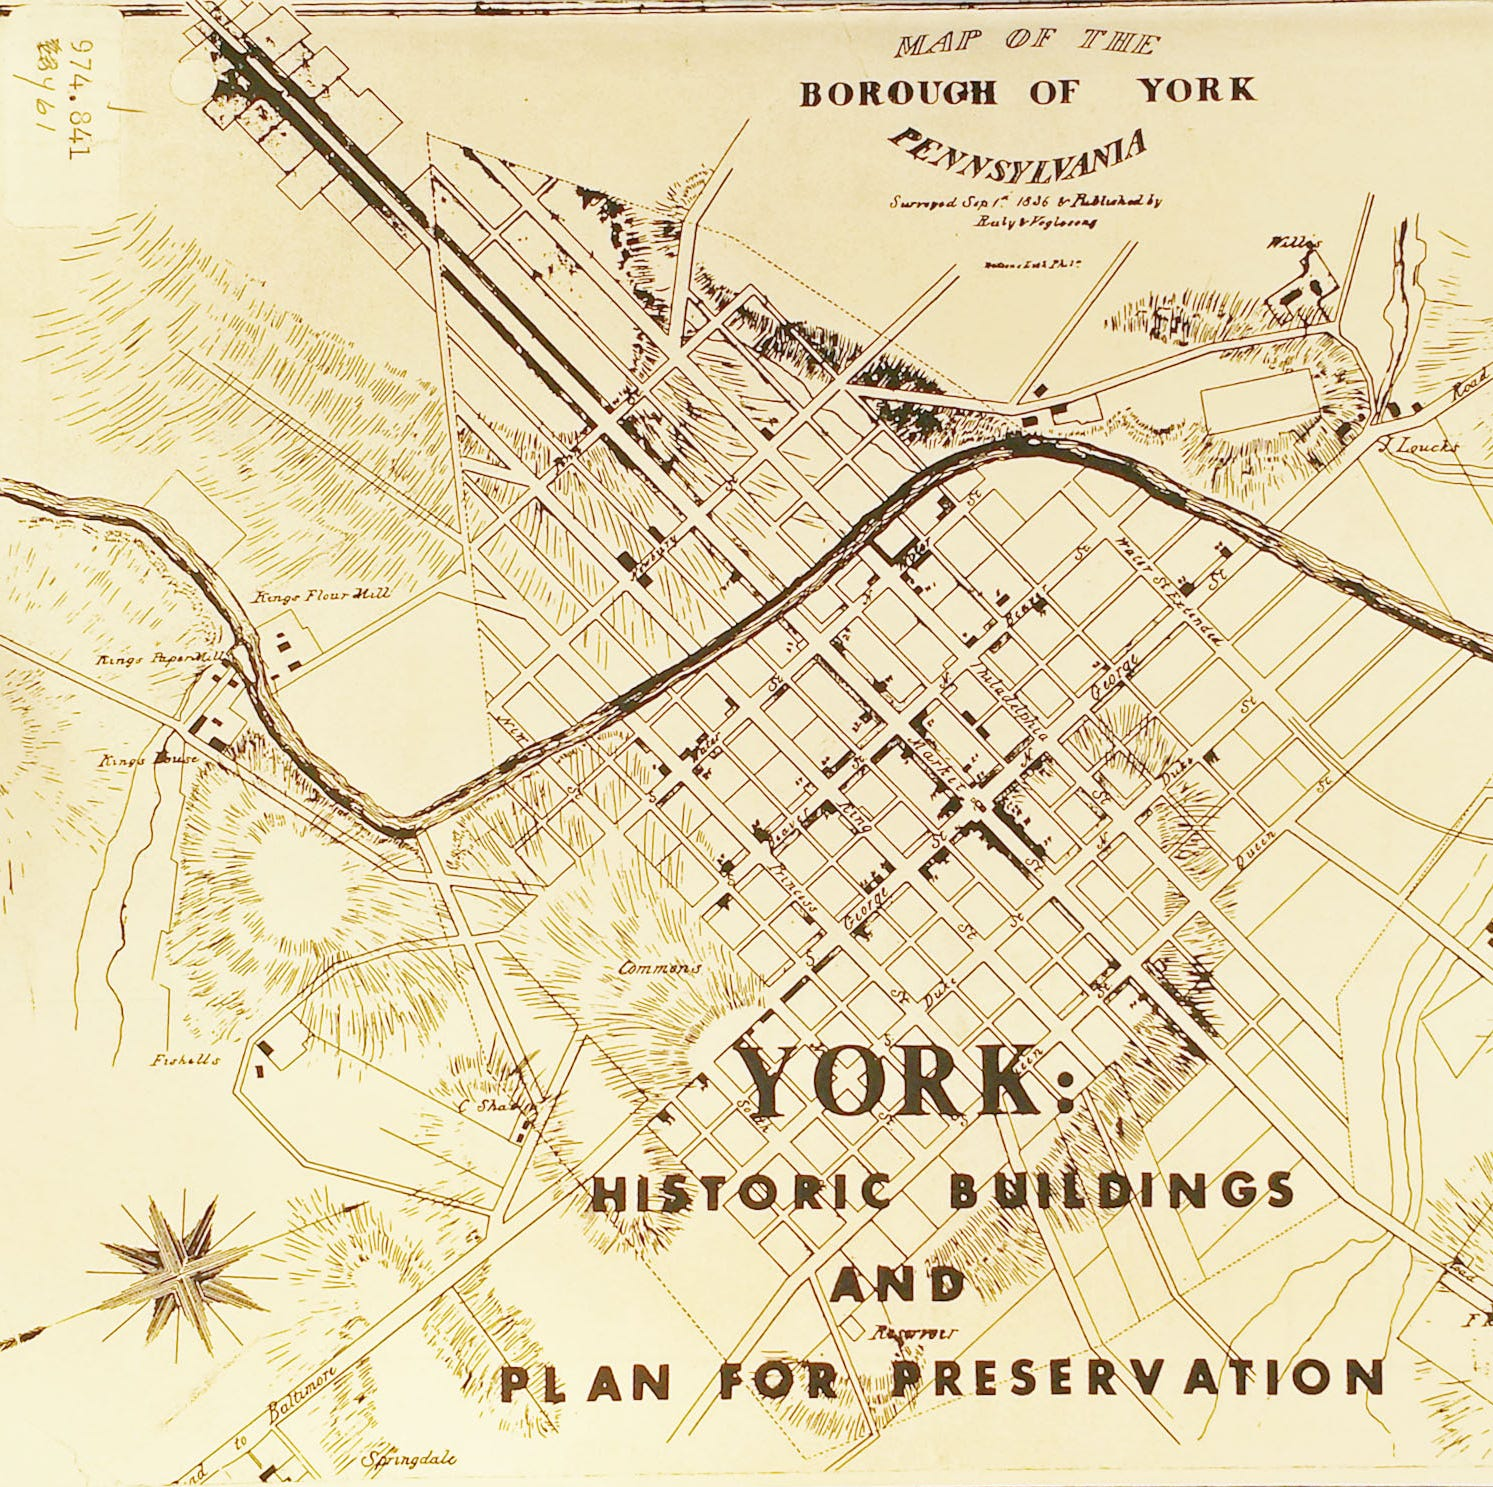 Historic preservation in York County: Sometimes a stack of plans and little action